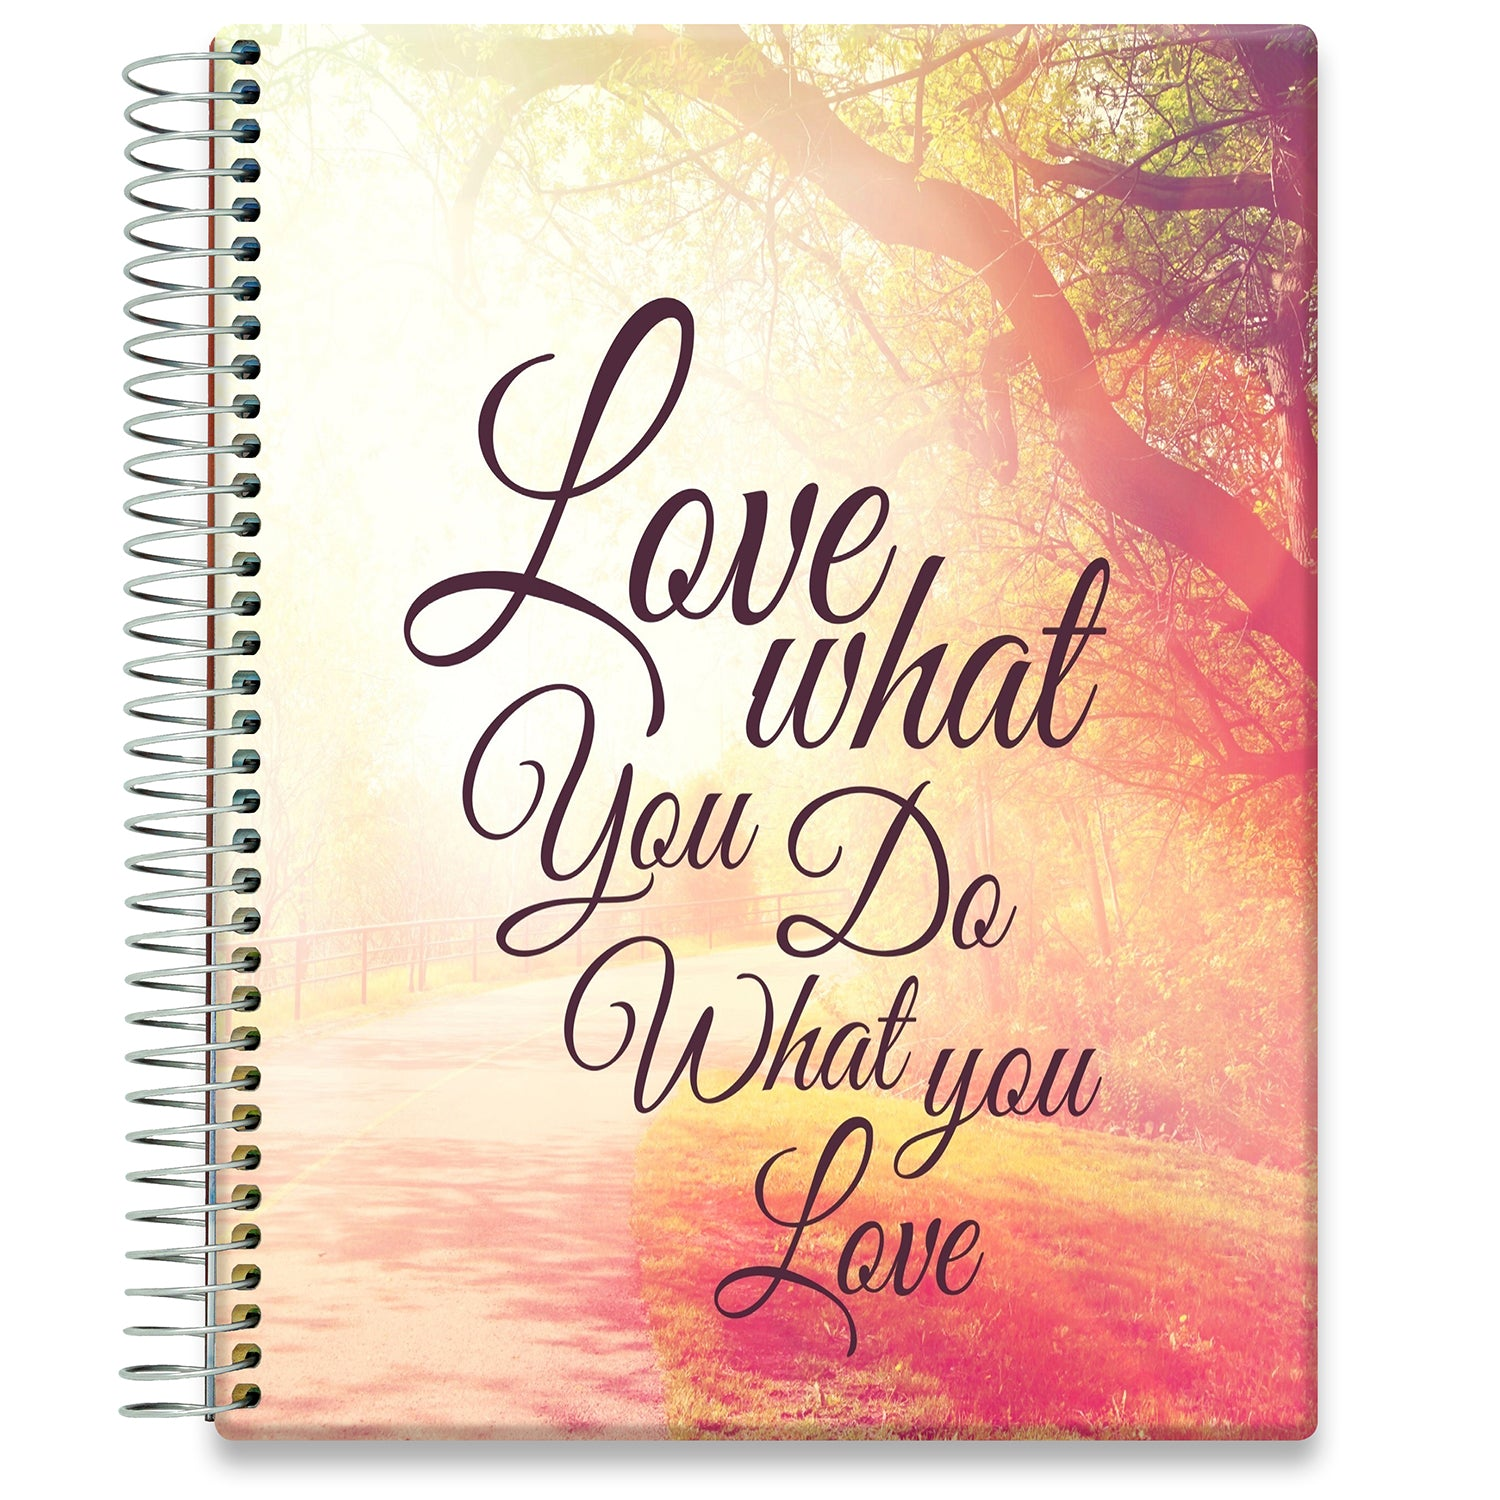 Planner 2021-2022 • April 2021 to June 2022 Academic Year • 8.5x11 Hardcover • Walden Inspirational Planner Cover